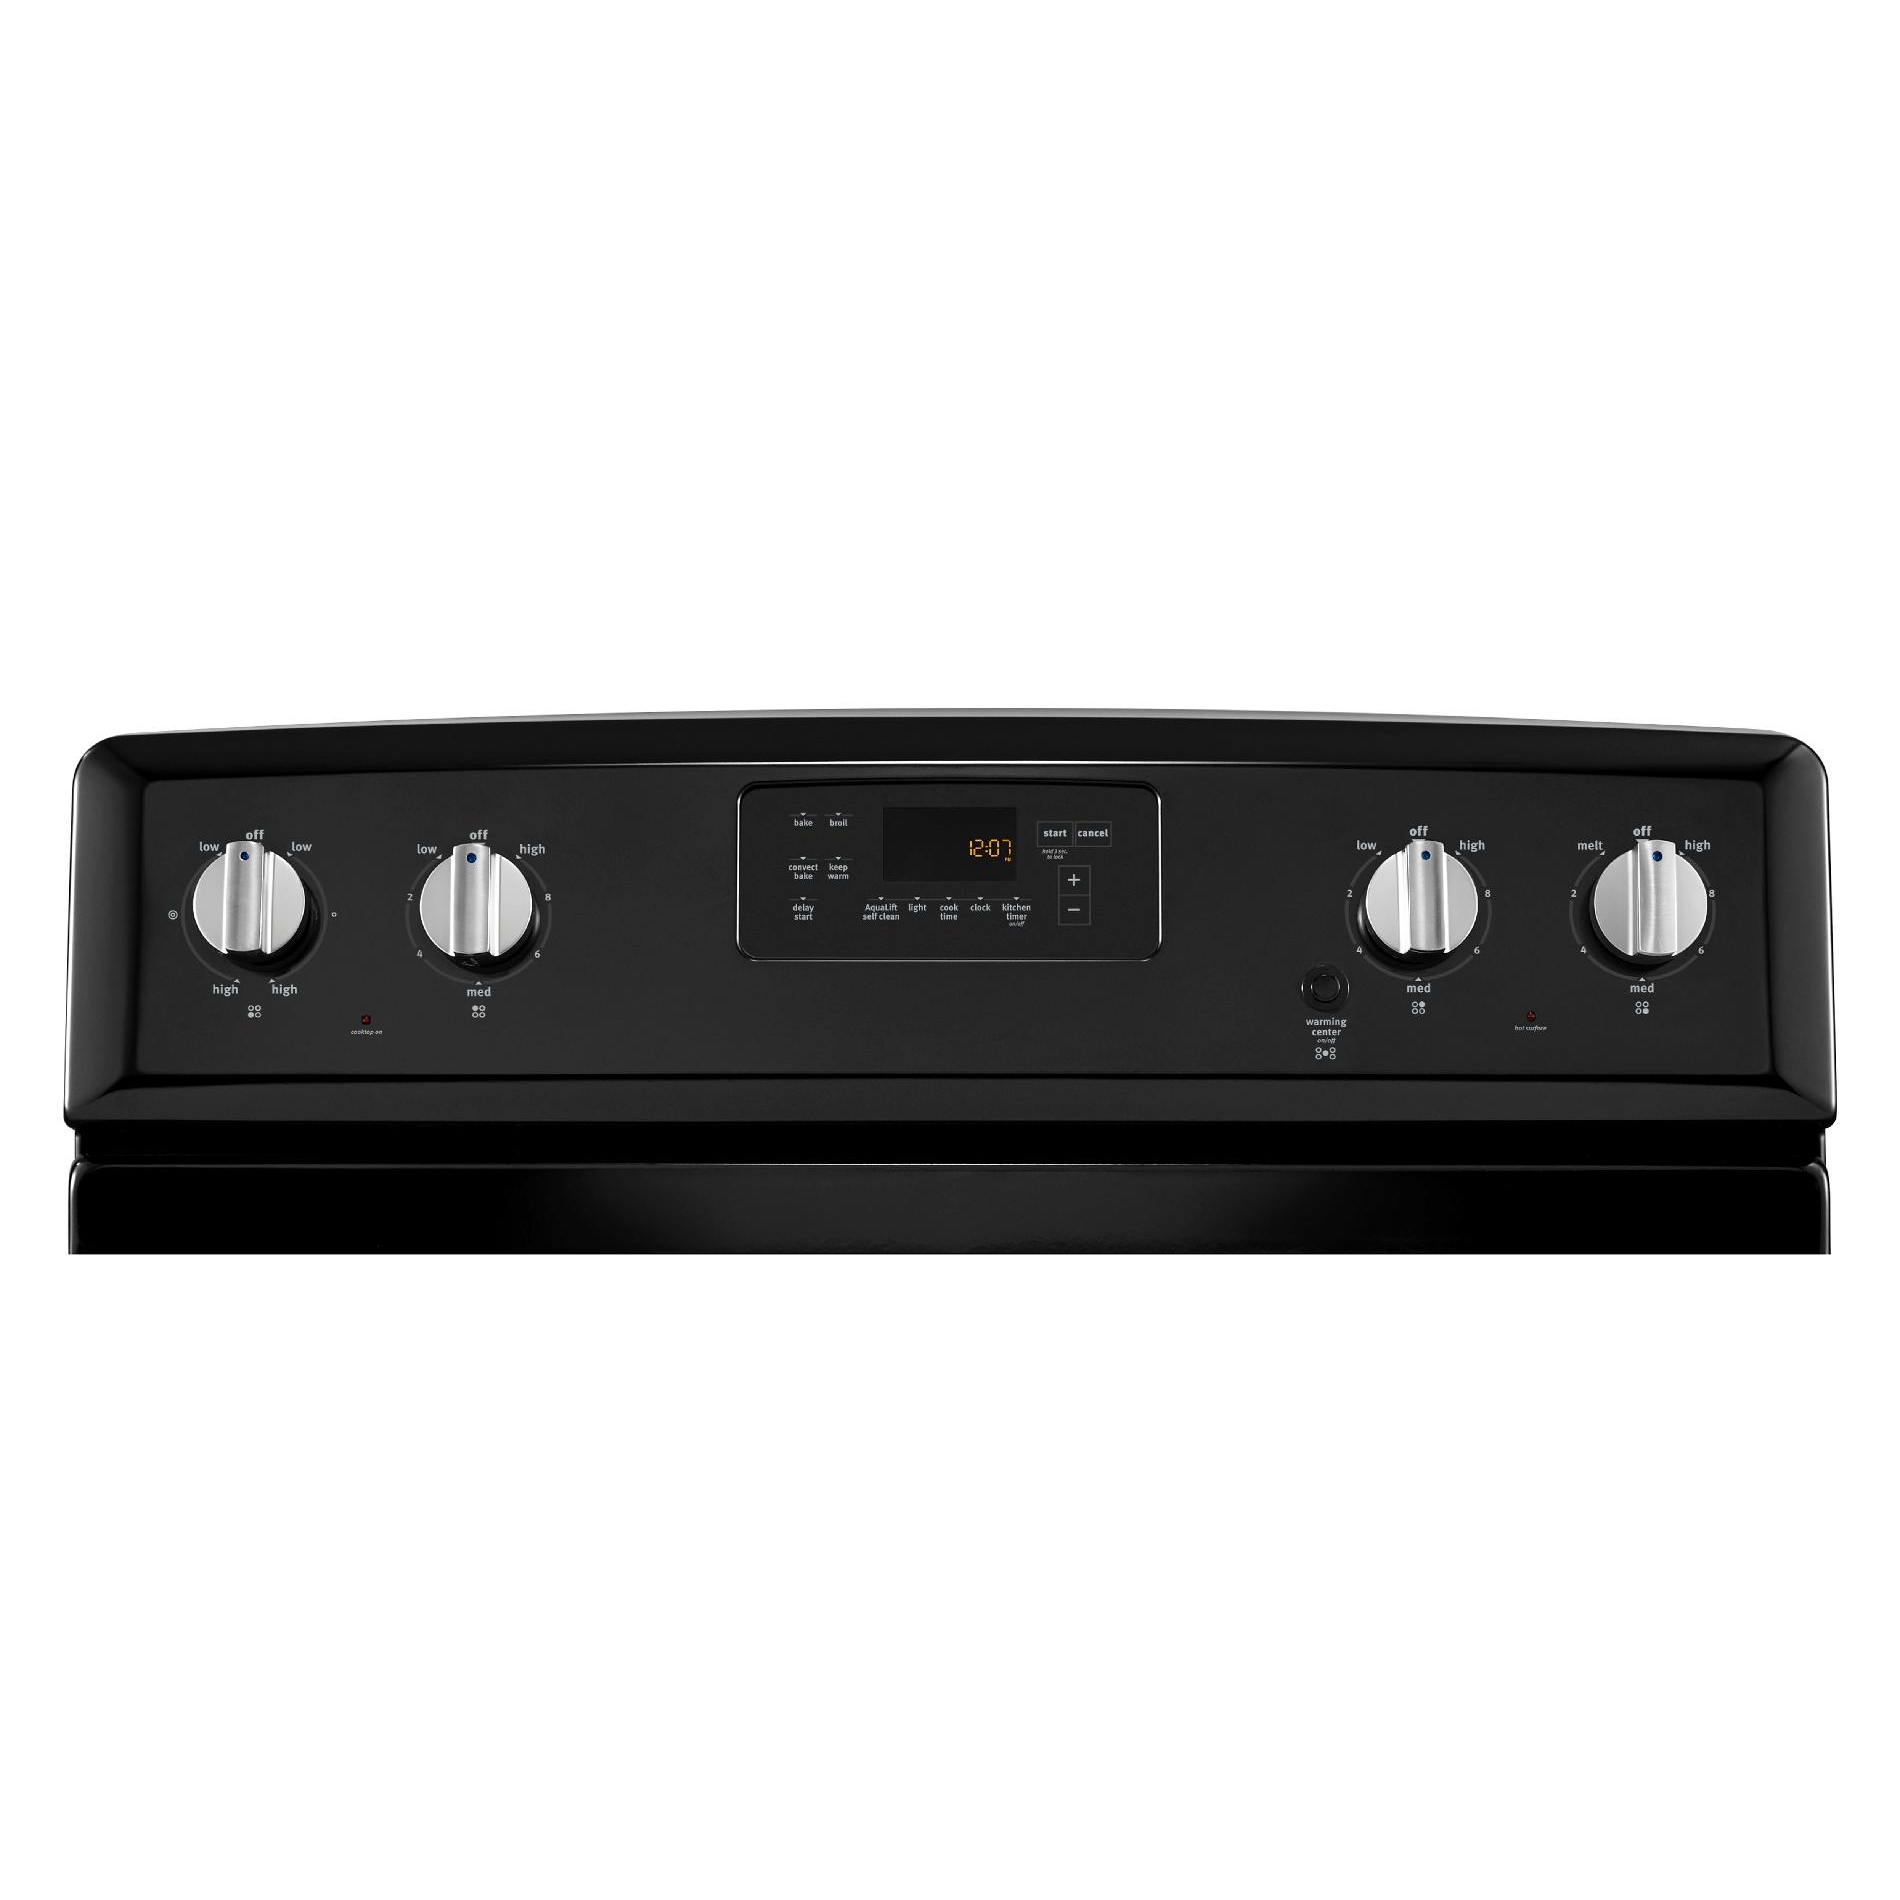 Maytag MER8700DE 6.2 cu. ft. Electric Range w/ 5th Element - Black w/ Stainless Handle